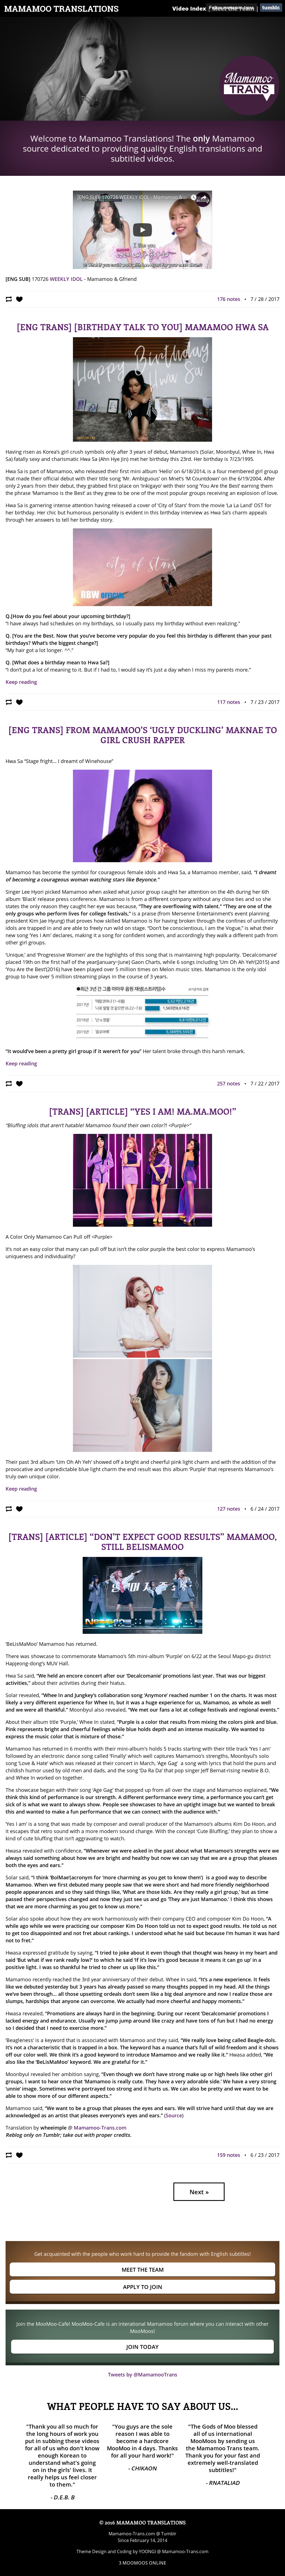 Mamamoo Translations Competitors, Revenue and Employees - Owler